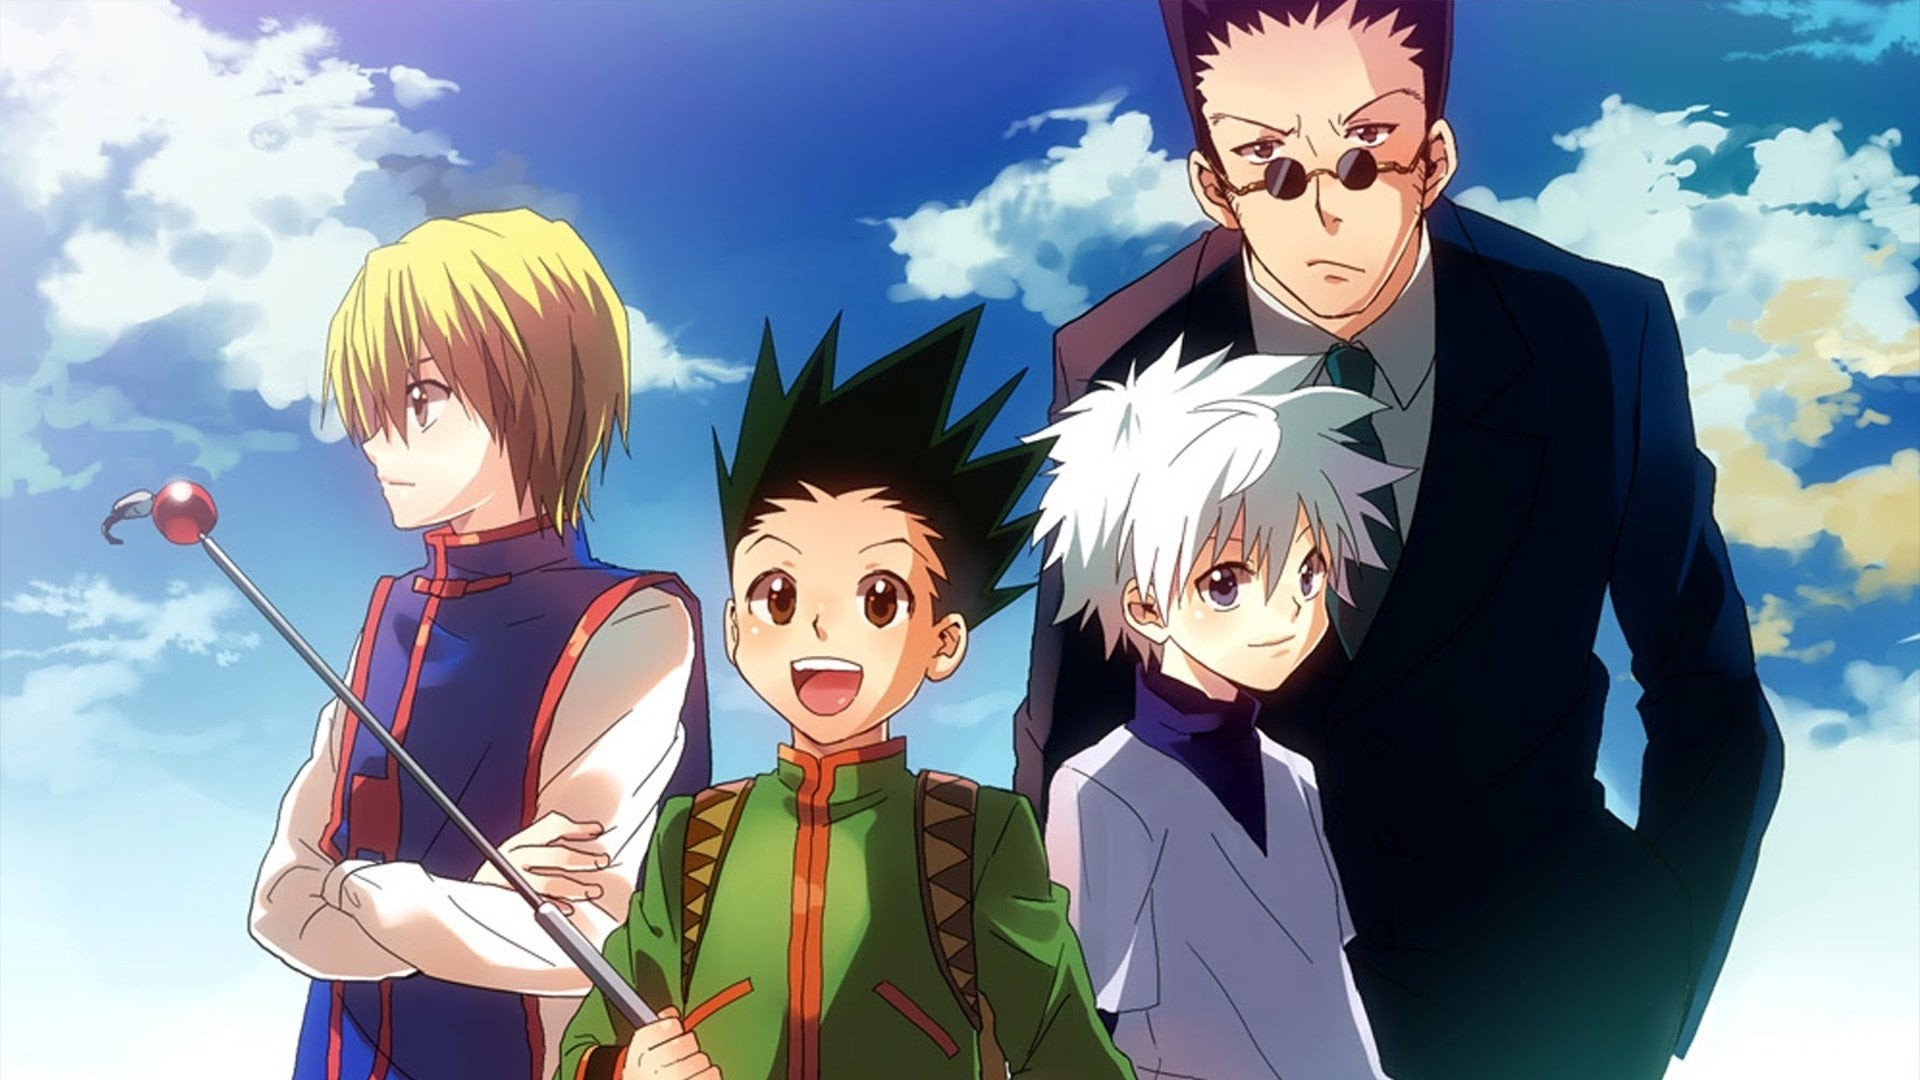 A collection of the top 37 hunter x hunter phone wallpapers and backgrounds available for download for free. 23+ Hunter x Hunter Wallpapers - WallpaperBoat